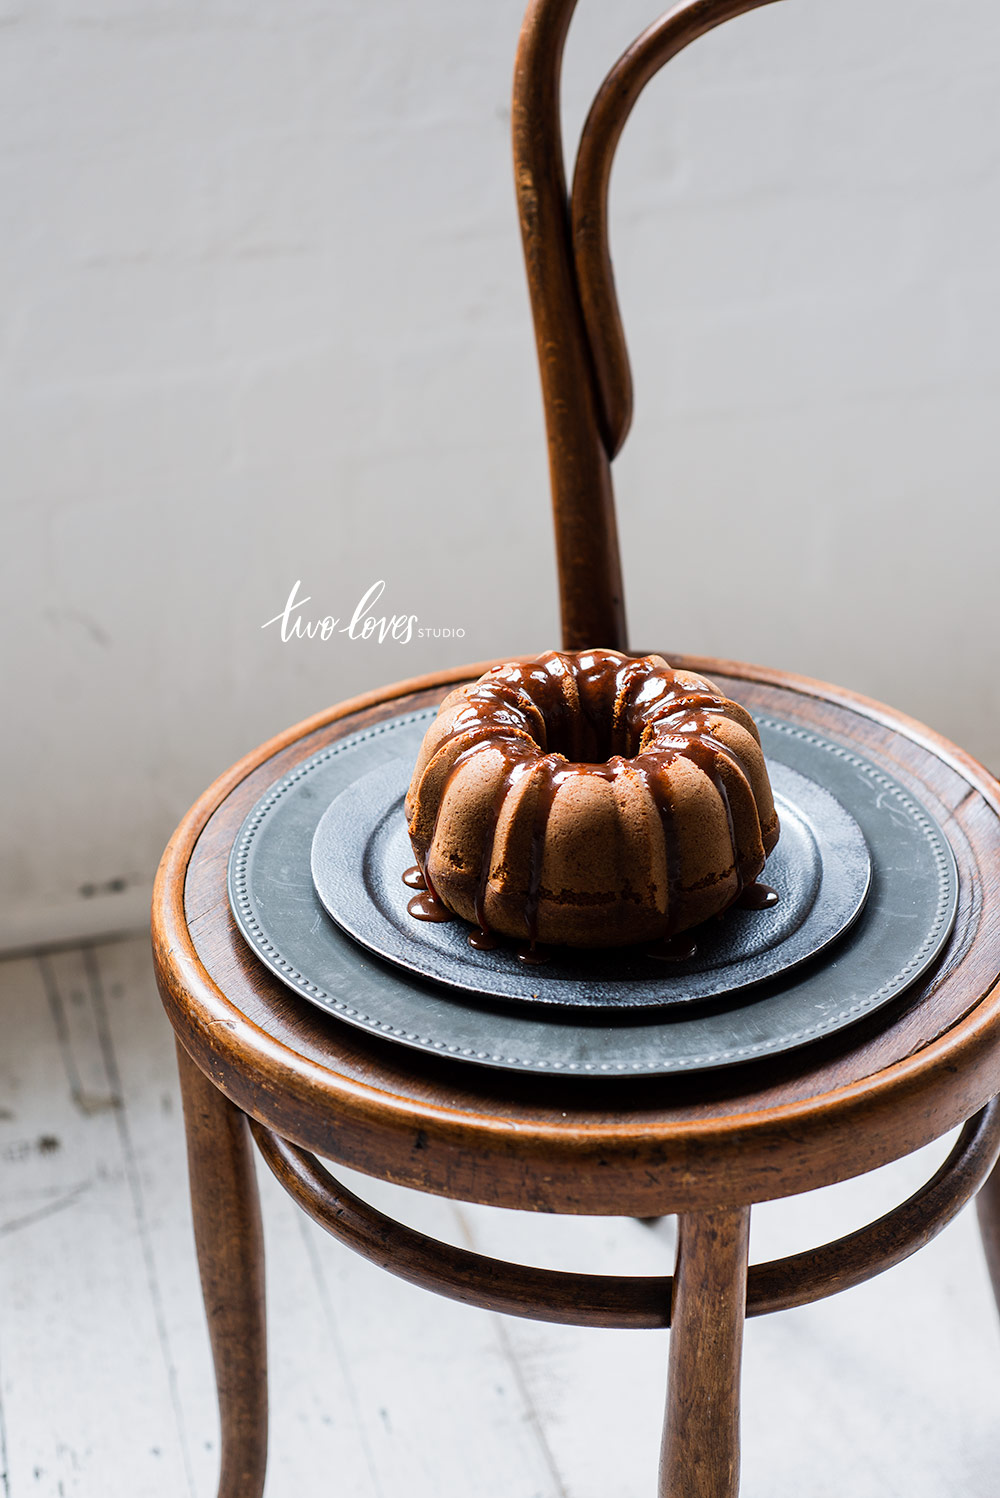 A bunt cake on top of a chair and a dark plate.